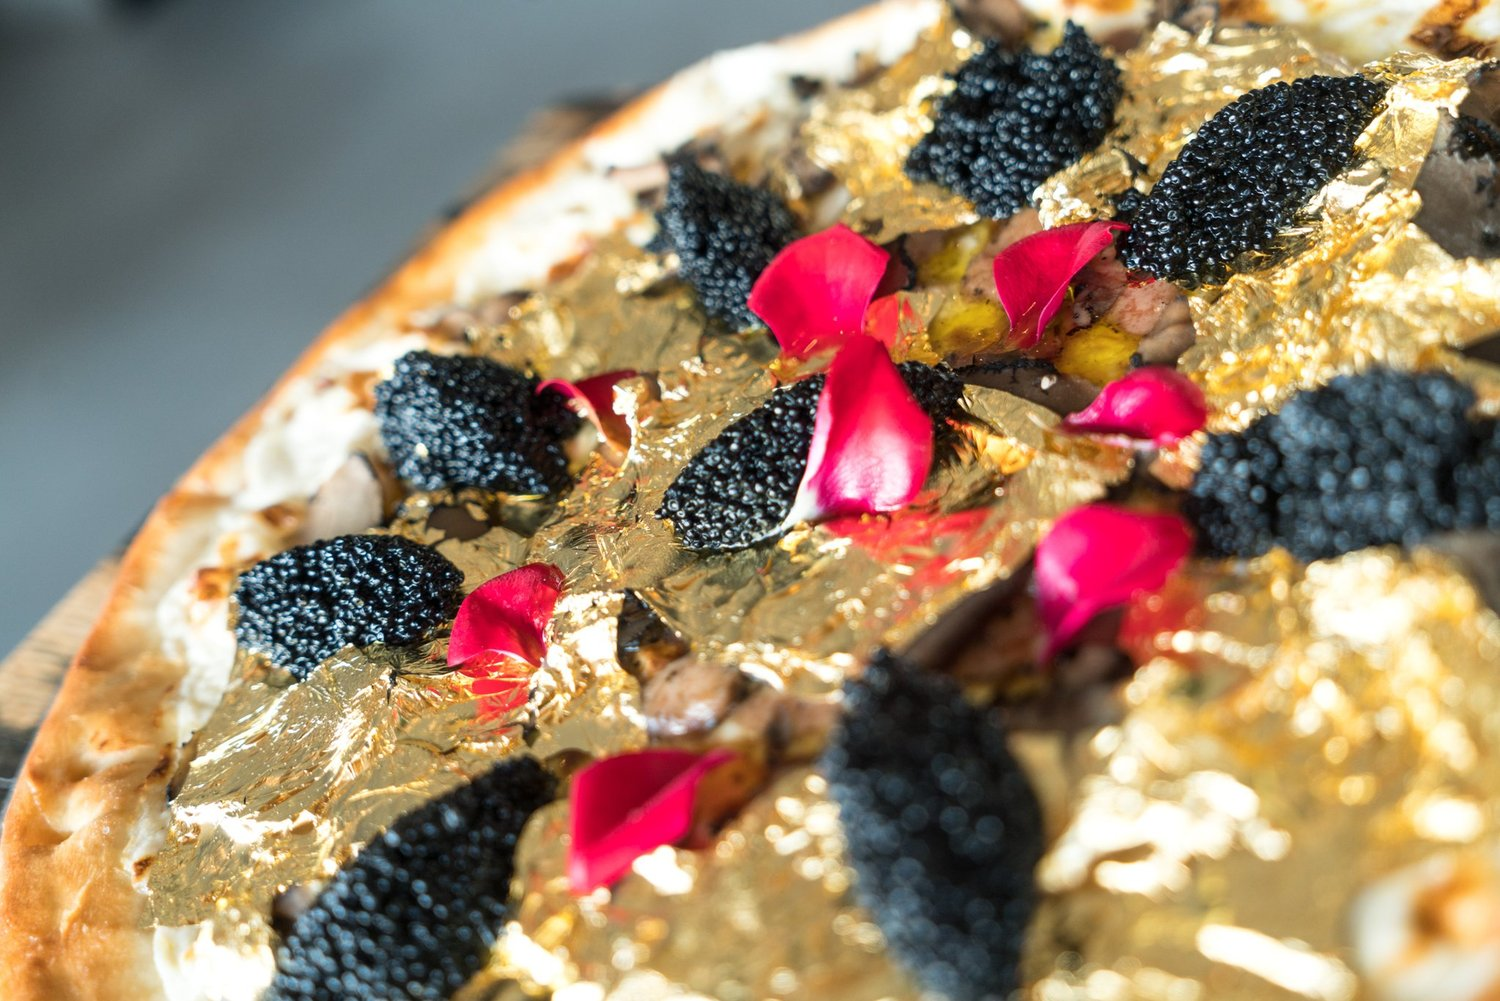 Thanks for highlighting our 24k Pizza @PureWow ! Check it out here https://t.co/ijYmIdxcY5. https://t.co/QCUyTUigVJ